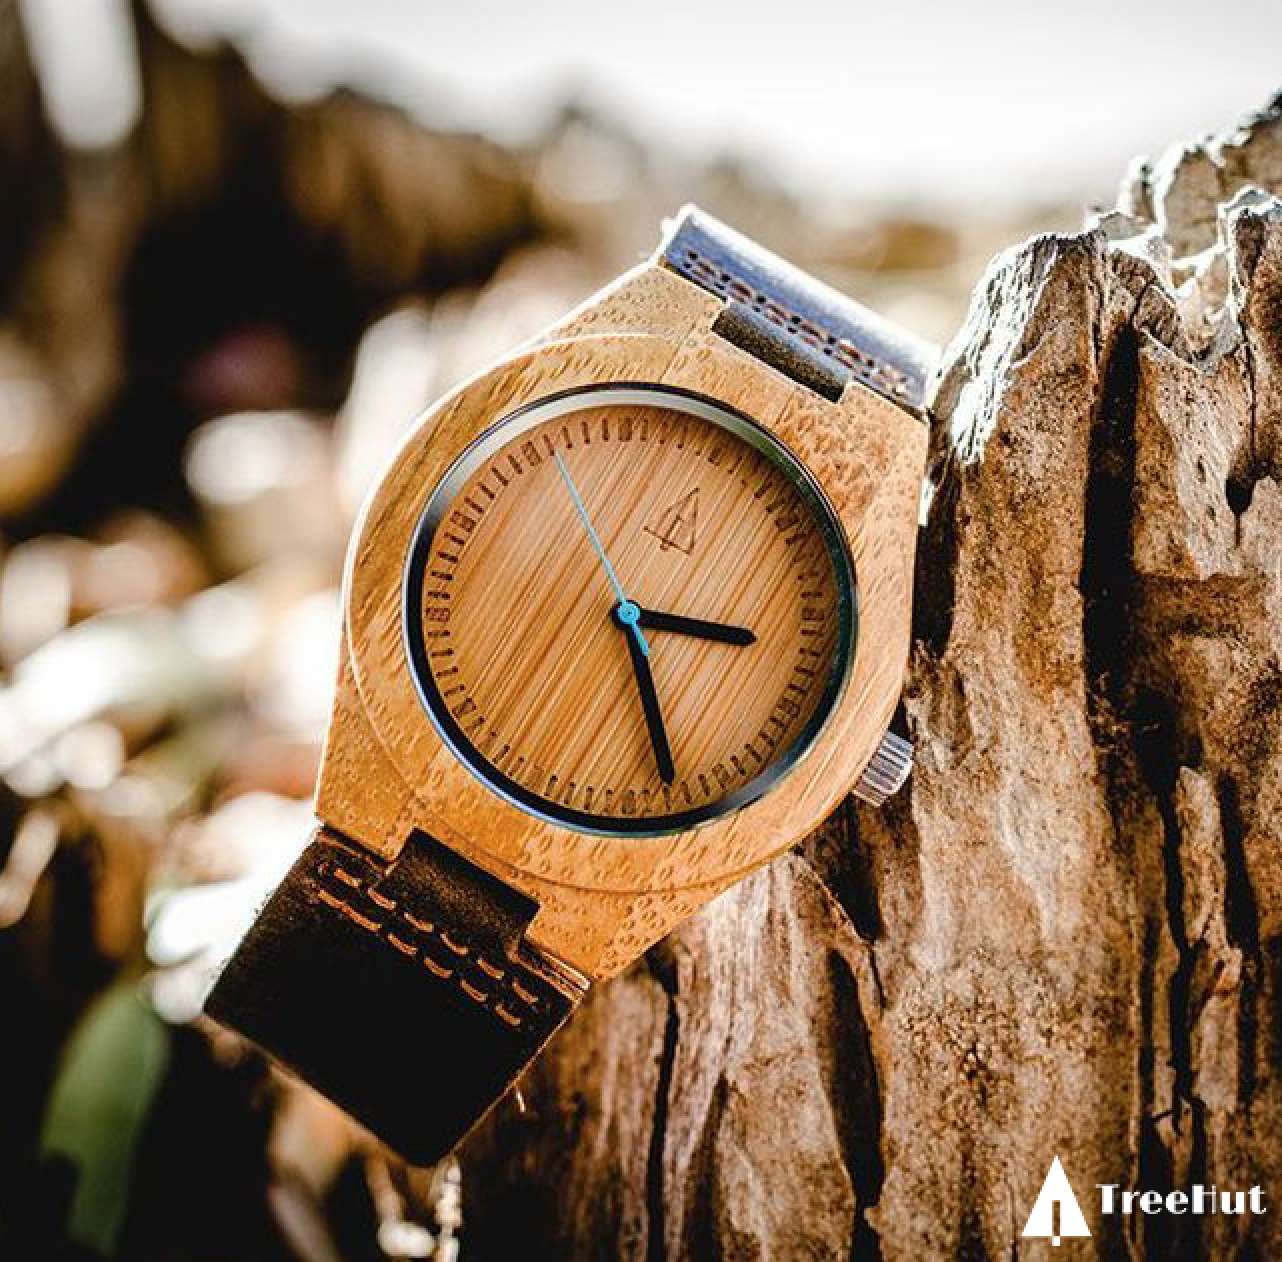 Boyd Small Blue Wooden watch, Watches, Tree hut watches